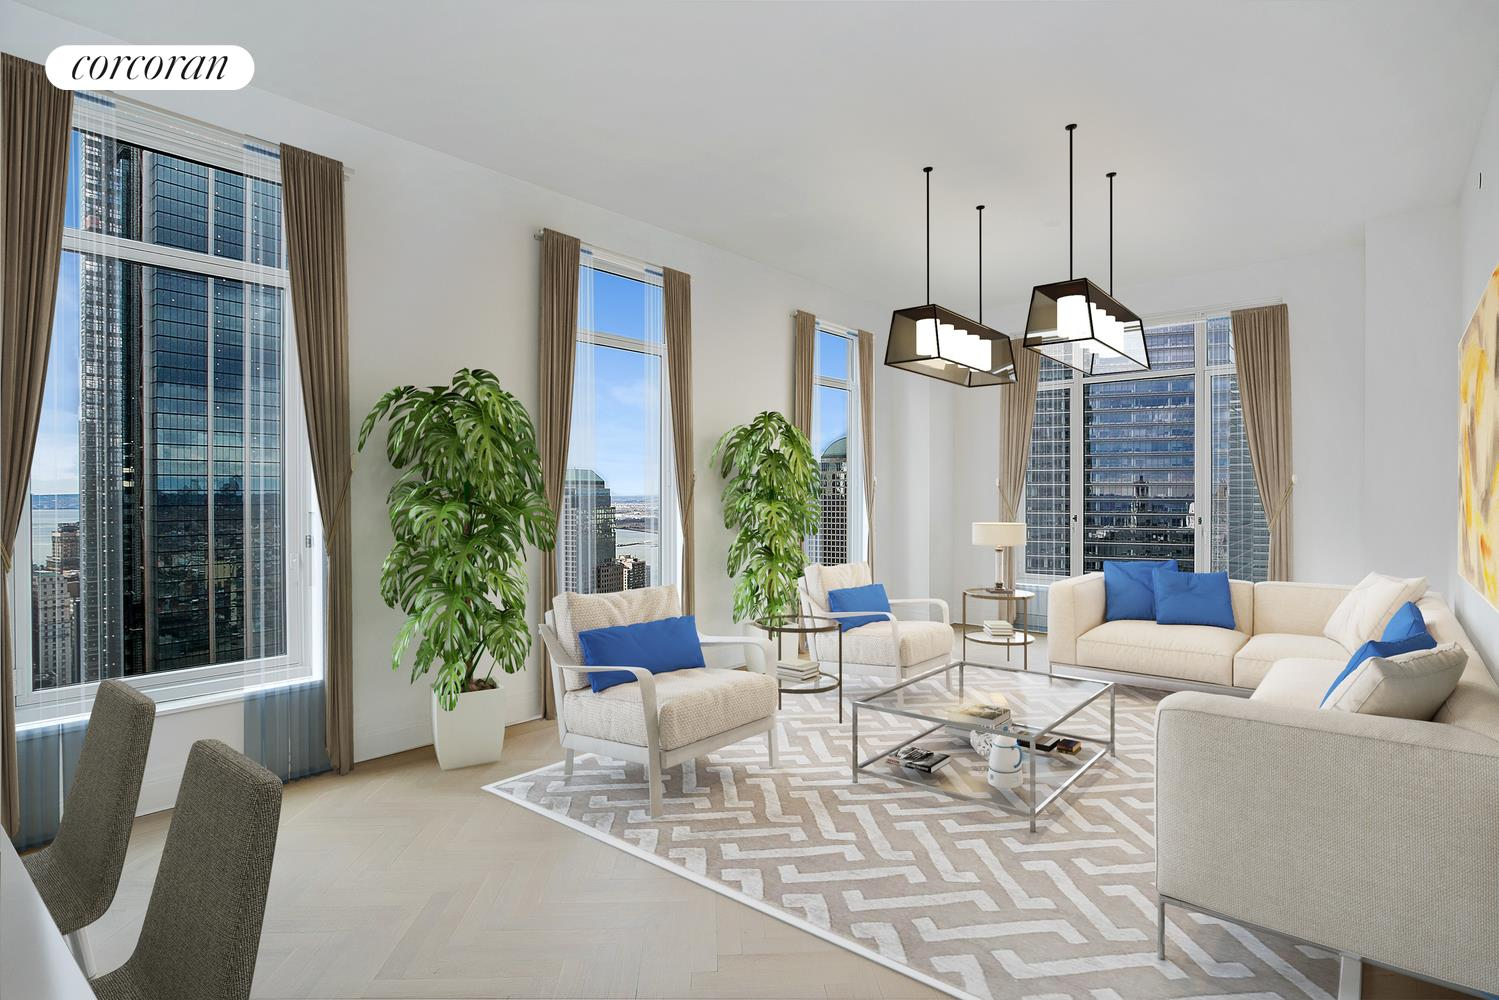 NEW TO MARKET!! Occupying the Southwest corner, this residence provides abundant light and dual exposures. The corner Master Bedroom Suite has total privacy within its own wing, and offers generous storage via 2 walk-in closets. Welcome to 5-star living at 30 Park Place, Four Seasons Private Residences New York, Downtown. Interior finishes include solid oak wood flooring with herringbone pattern in the formal rooms, Bilotta rift-cut oak kitchen cabinetry, Gaggenau appliances, marble bathrooms with Robert A.M. Stern custom-designed vanities. Services by legendary Four Seasons Hotels and Resorts. With residences beginning on the 39th floor, the sweeping views are unparalleled. Residents may enjoy access to Four Seasons Hotel amenities including a spa and salon facilities, 75' swimming pool, attended parking garage, restaurant, bar and lounge, ballroom facilities, and meeting rooms, as well as a comprehensive suite of a la carte services. The 38th floor is devoted to private residential amenities including a fitness center and yoga studio, private dining room, conservatory and lounge with access to loggias, Roto-designed playroom, and screening room. Developed by visionary Silverstein Properties, Inc. Masterfully designed by Robert A.M. Stern Architects. Pet friendly. Storage Included with the sale.